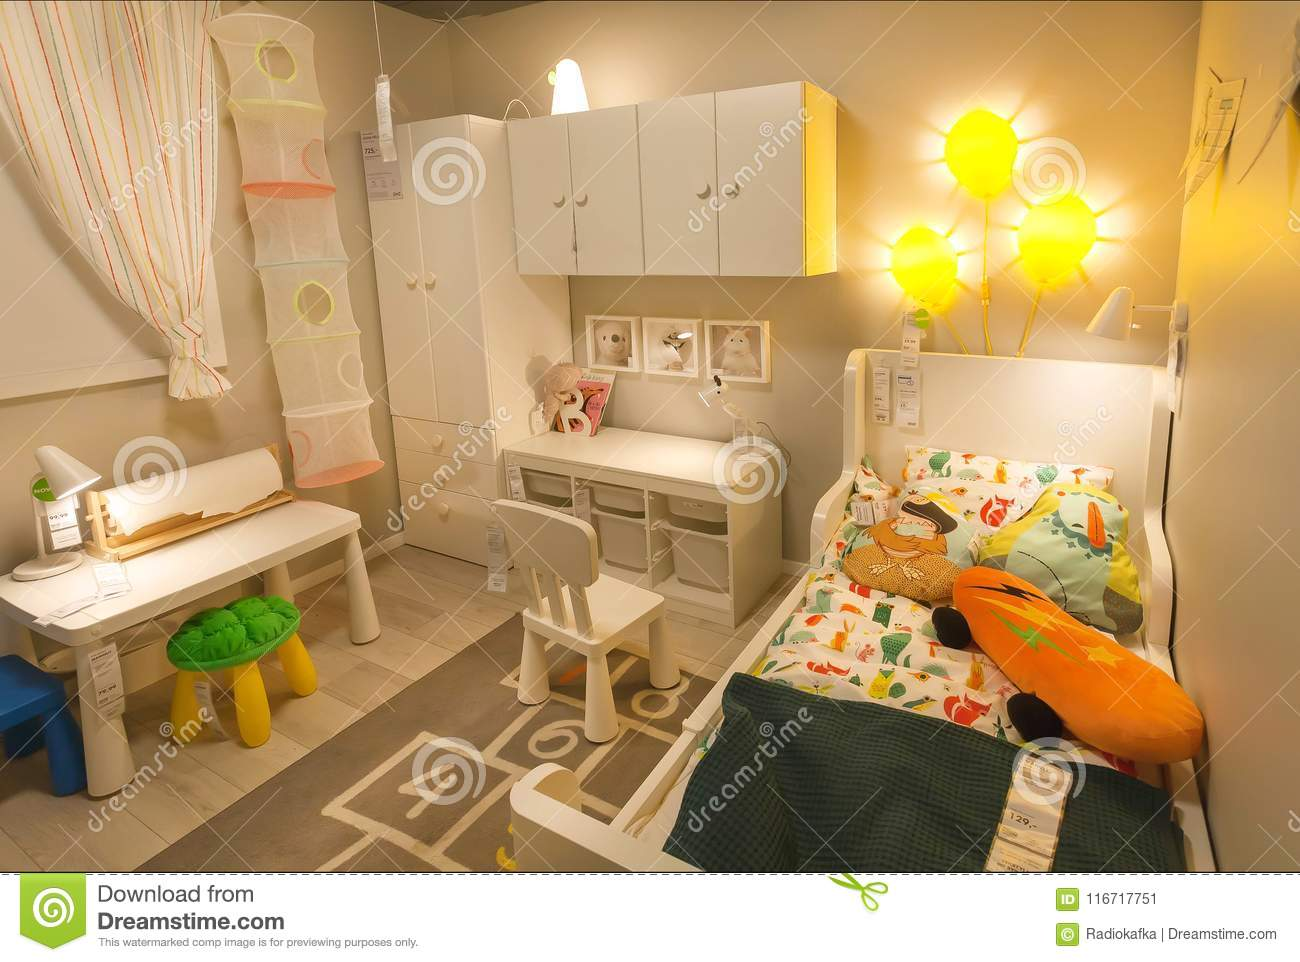 Cute modern children`s room in large ikea store with bed toys